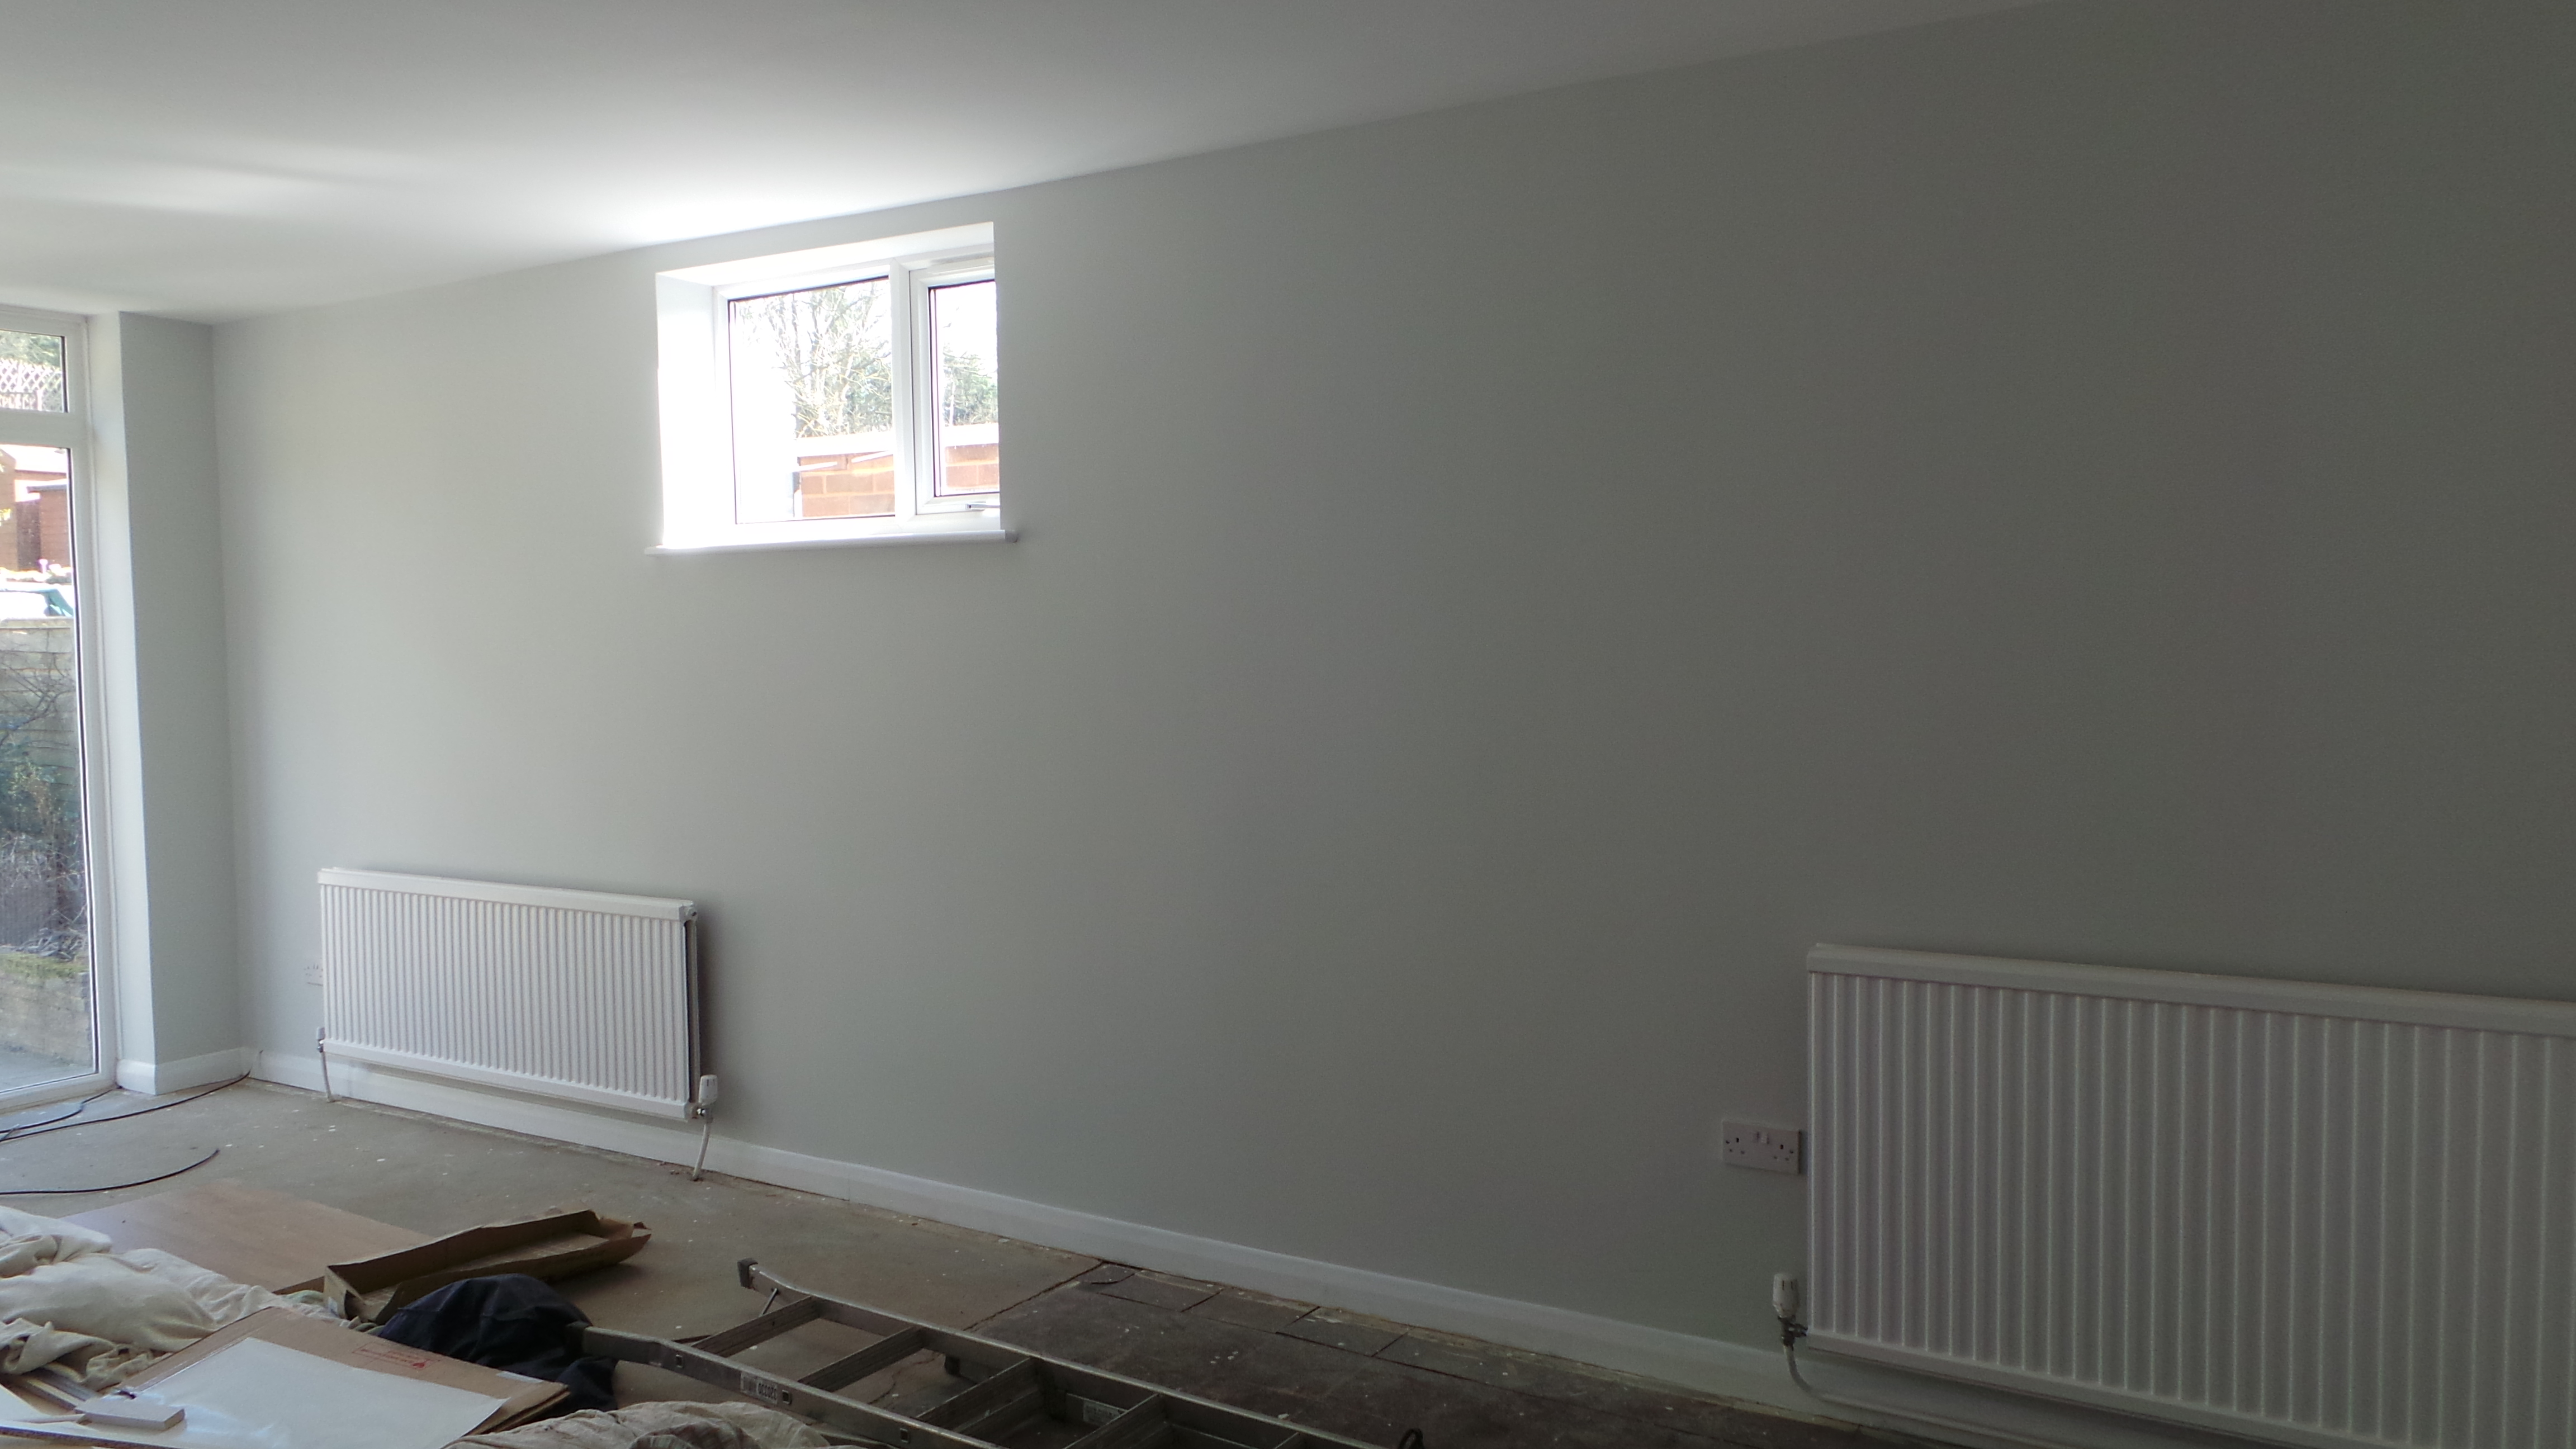 Dulux Zestaw Bedroom In A Box: Review: Dulux Polished Pebble Paint